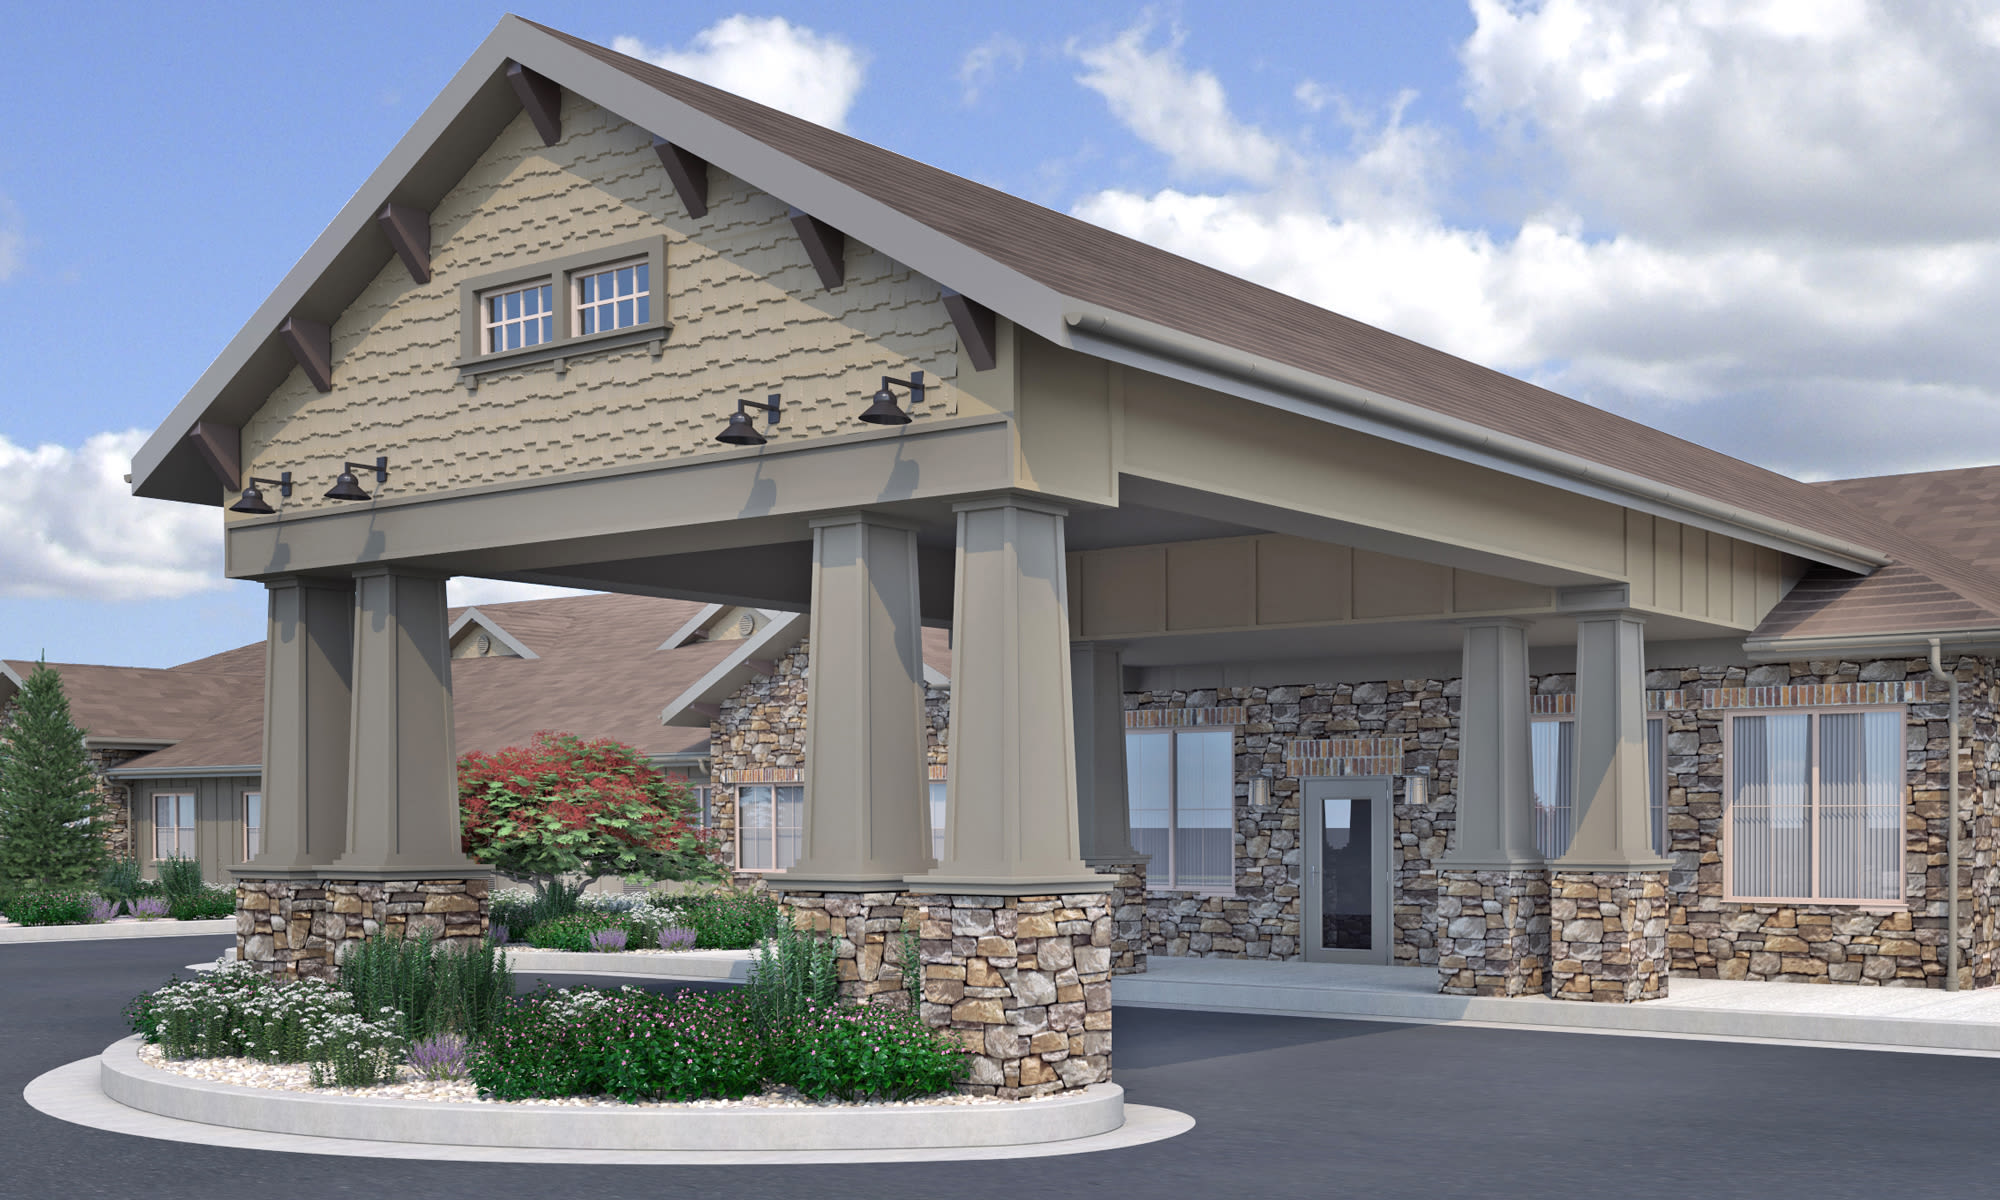 Deer Ridge Memory Care exterior in Puyallup, Washington